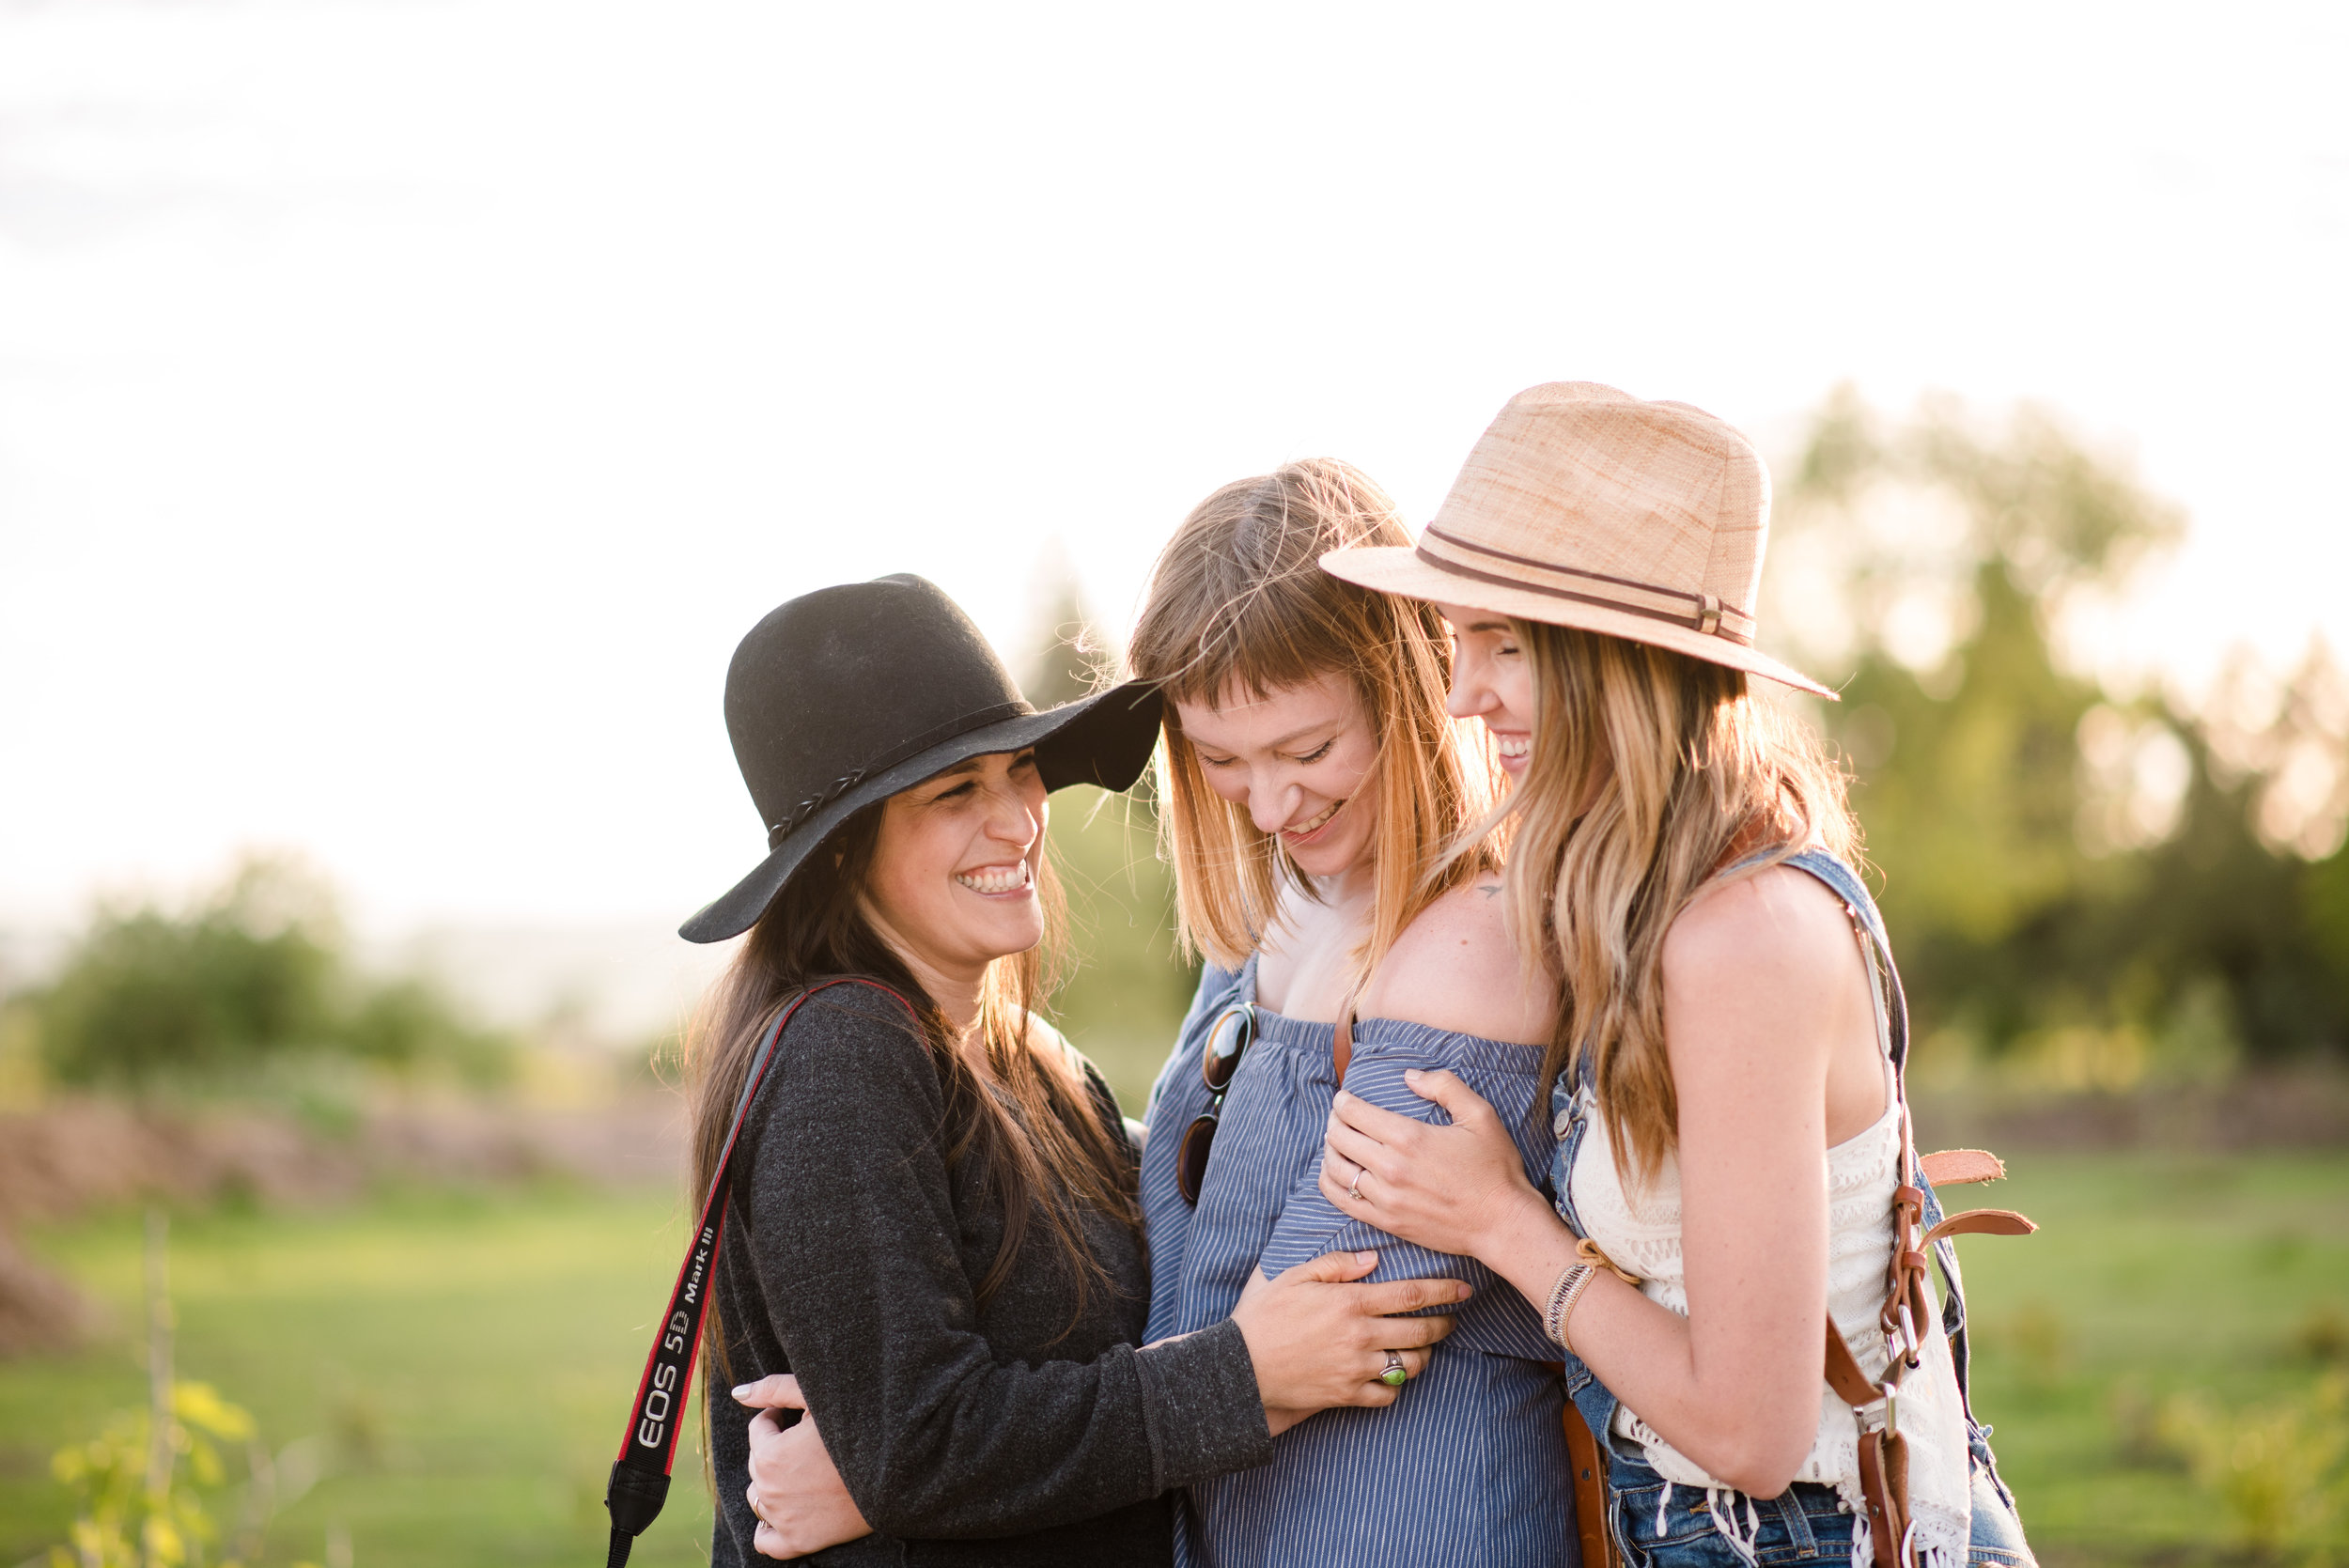 blair and thurston boutique photography retreat for photographers sonoma getaway girls weekend | emily hines captured austin